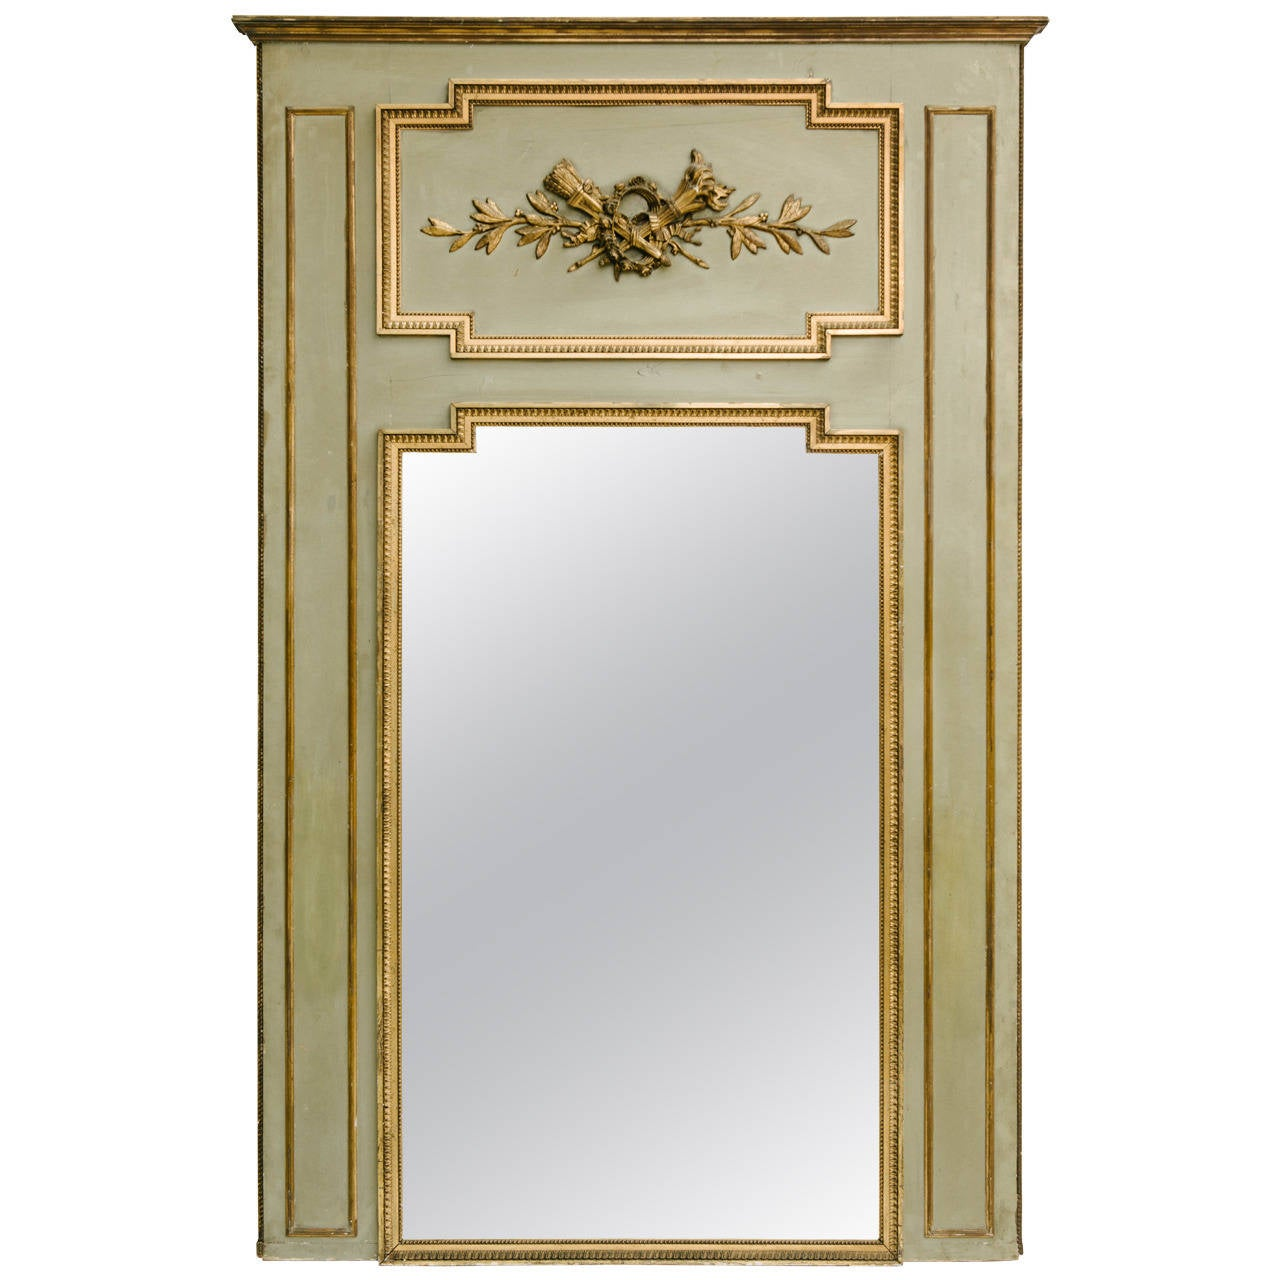 19th century french trumeau mirror for sale at 1stdibs for French mirror